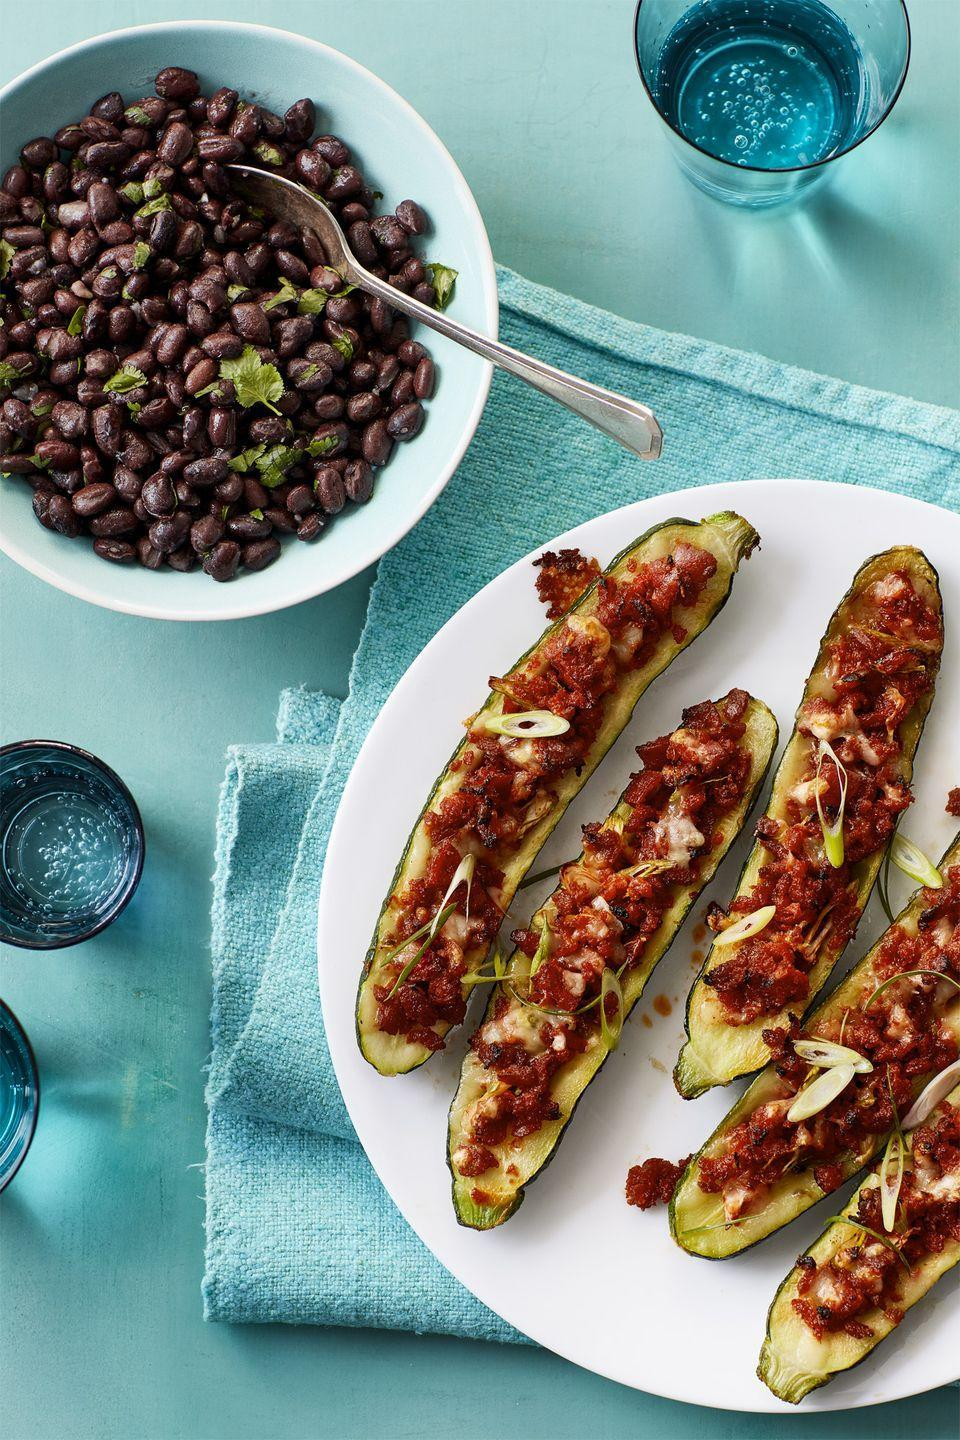 """<p>Get your veggies in by baking spicy chorizo and Pepper Jack cheese into hollowed out zucchini.</p><p><em><a href=""""https://www.womansday.com/food-recipes/food-drinks/recipes/a58989/tex-mex-stuffed-zucchini-black-beans-recipe/"""" rel=""""nofollow noopener"""" target=""""_blank"""" data-ylk=""""slk:Get the Tex Mex Stuffed Zucchini with Black Beans recipe."""" class=""""link rapid-noclick-resp"""">Get the Tex Mex Stuffed Zucchini with Black Beans recipe.</a></em></p>"""